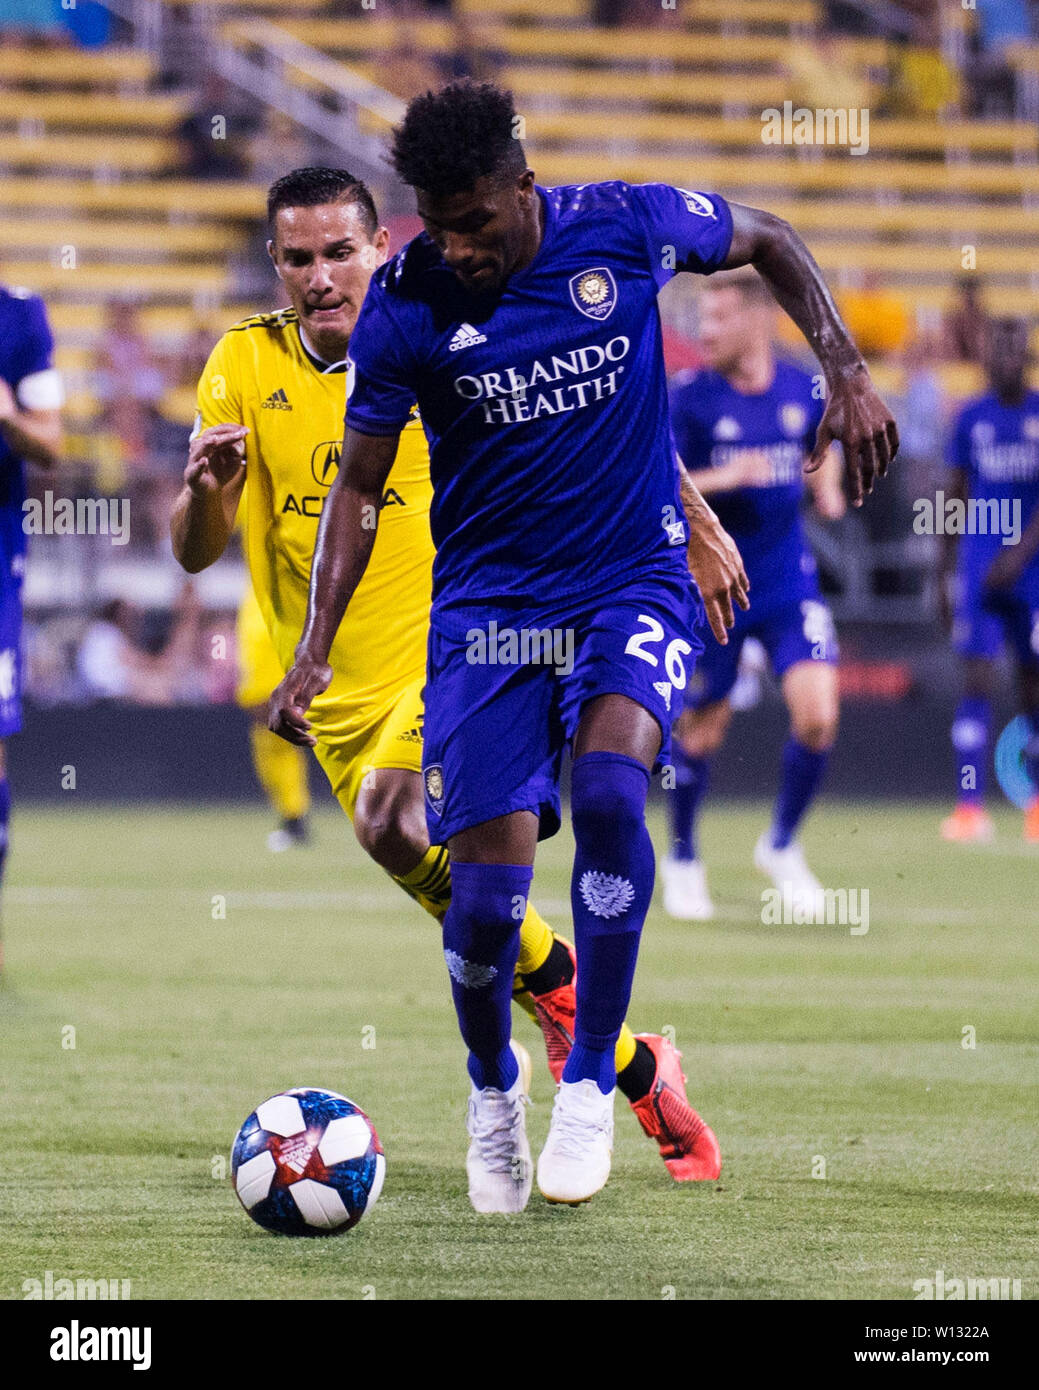 June 29, 2019: Orlando City defender Carlos Ascues (26) handles the ball against the Columbus Crew SC defense in their game in Columbus, Ohio, USA. Brent Clark/Alamy Live News - Stock Image